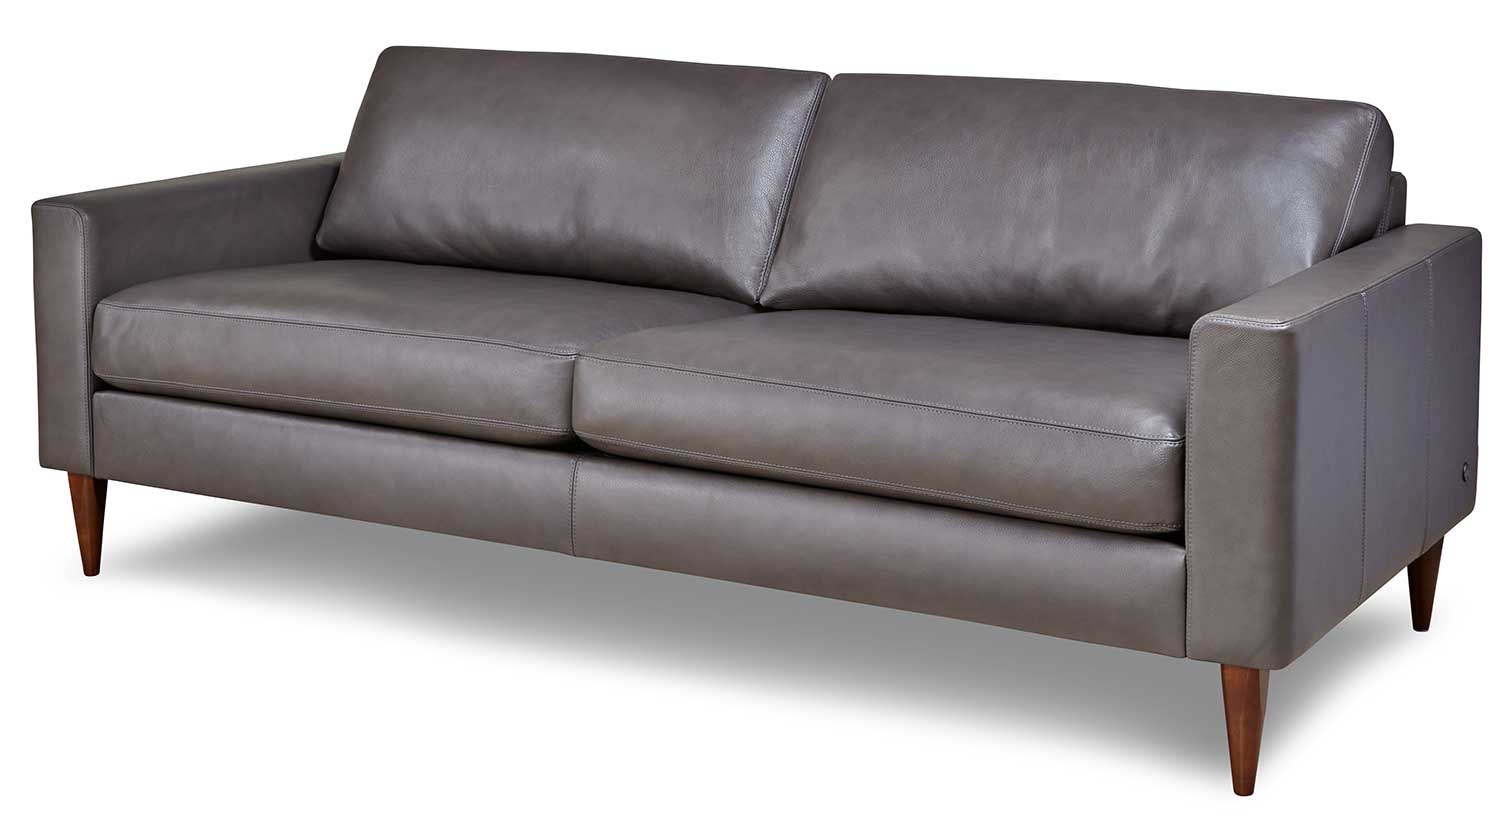 Circle Furniture - Ely Sofa | Contemporary Couches | Circle ...